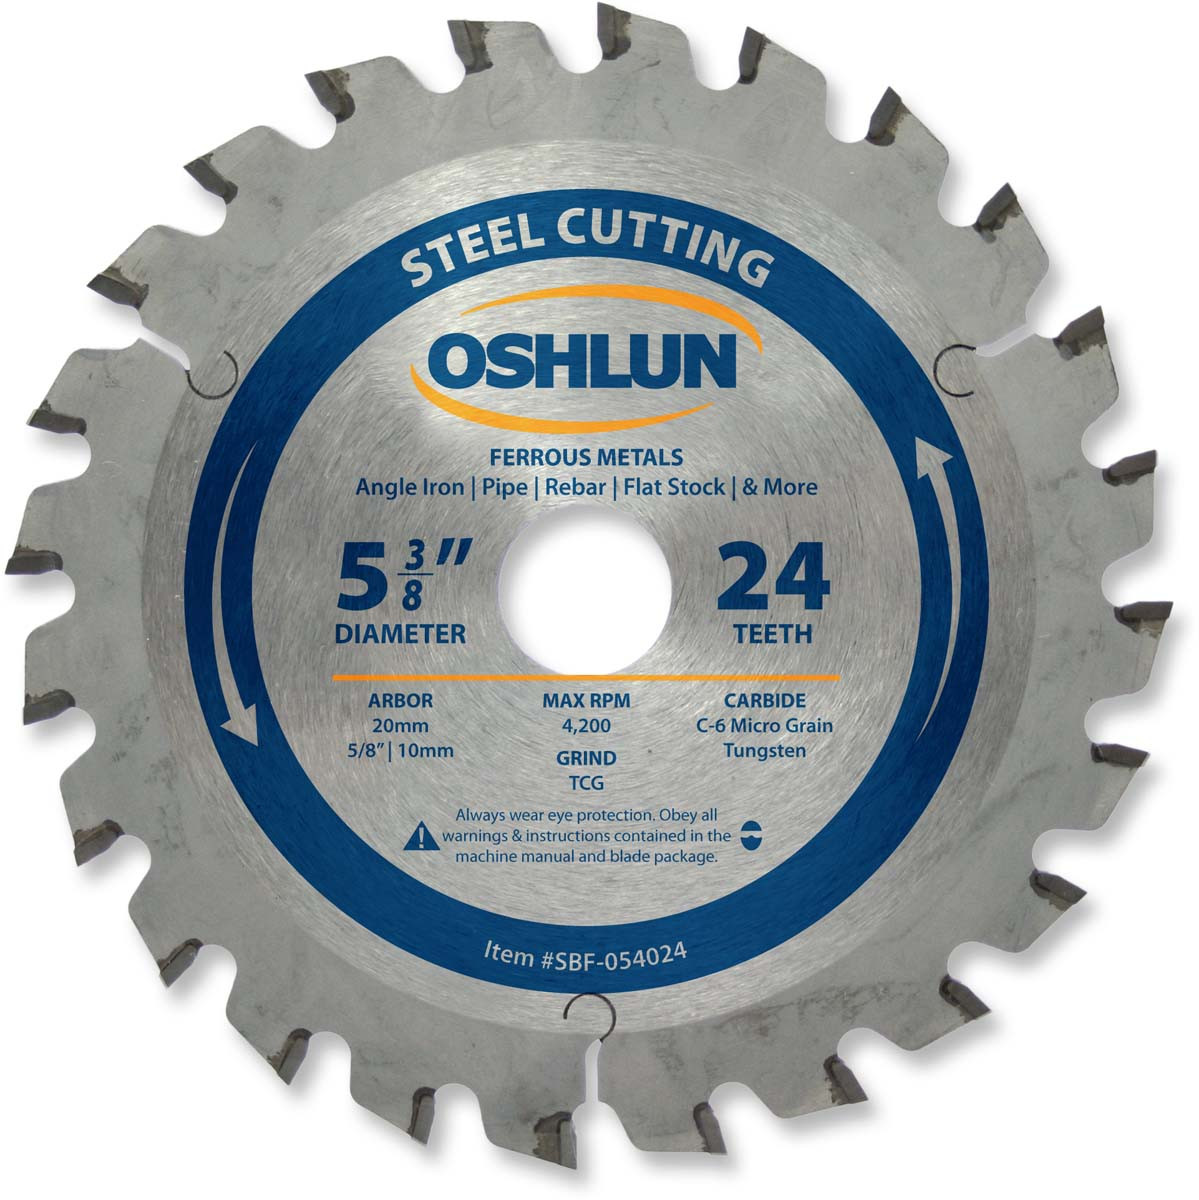 Ferrous saw blade 5 38 x 24t x 20mm arbor oshlun sbf 054024 greentooth Image collections